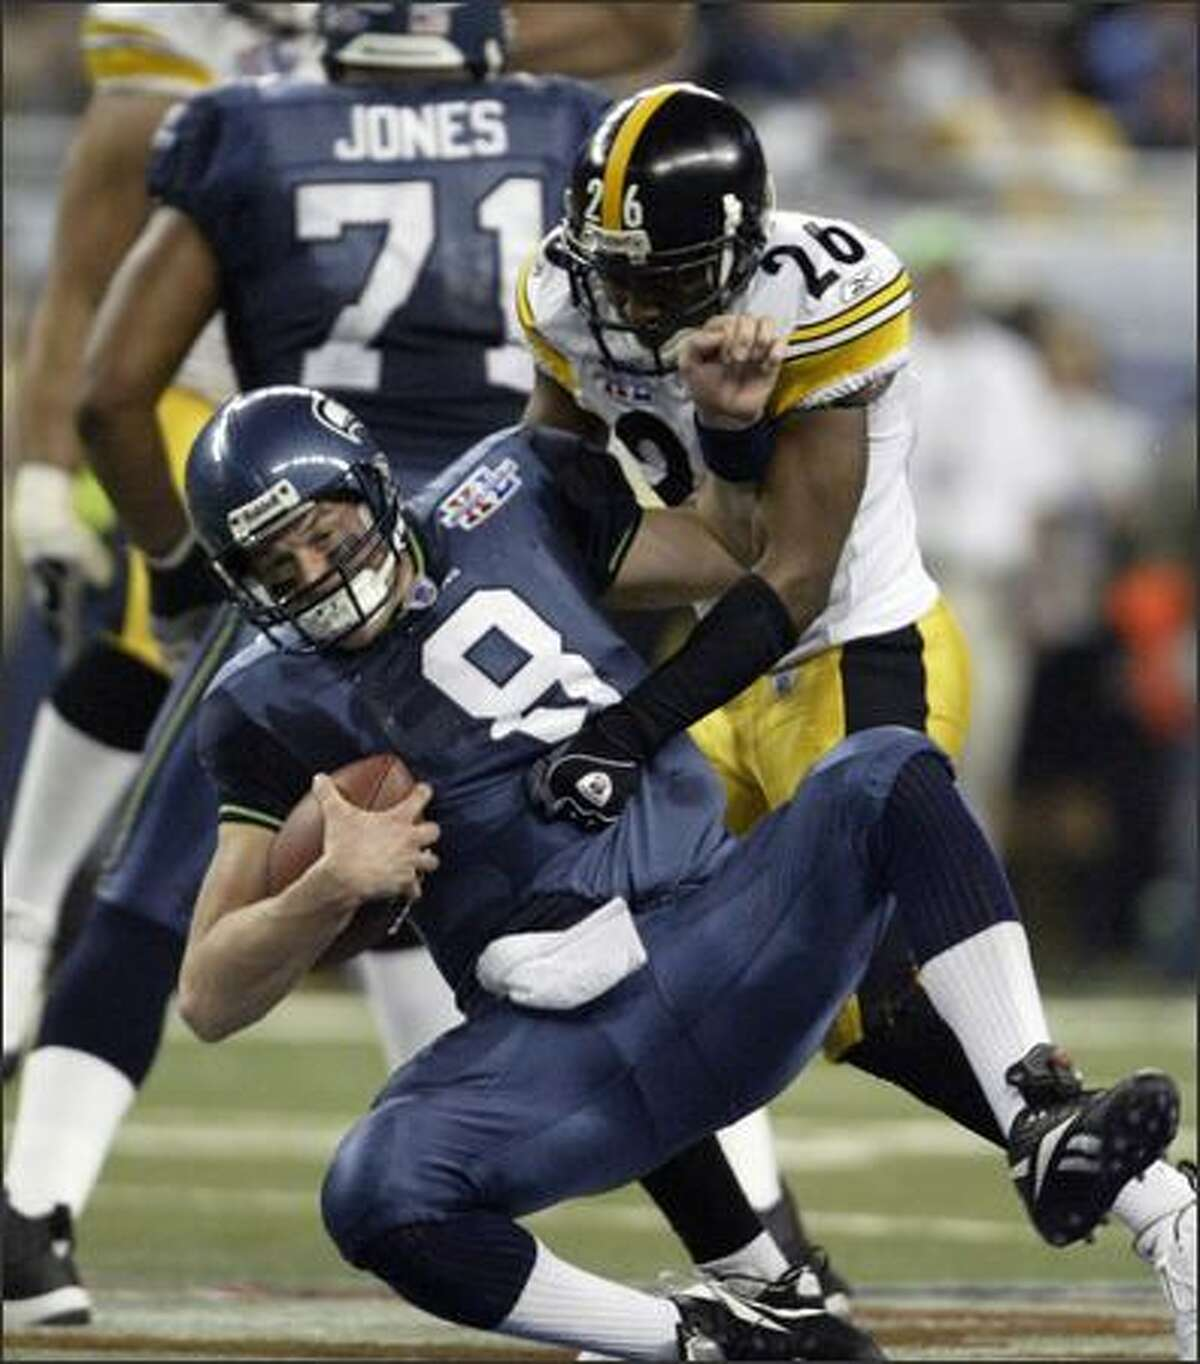 Matt Hasselbeck is taken down by Deshea Townsend in the fourth quarter.